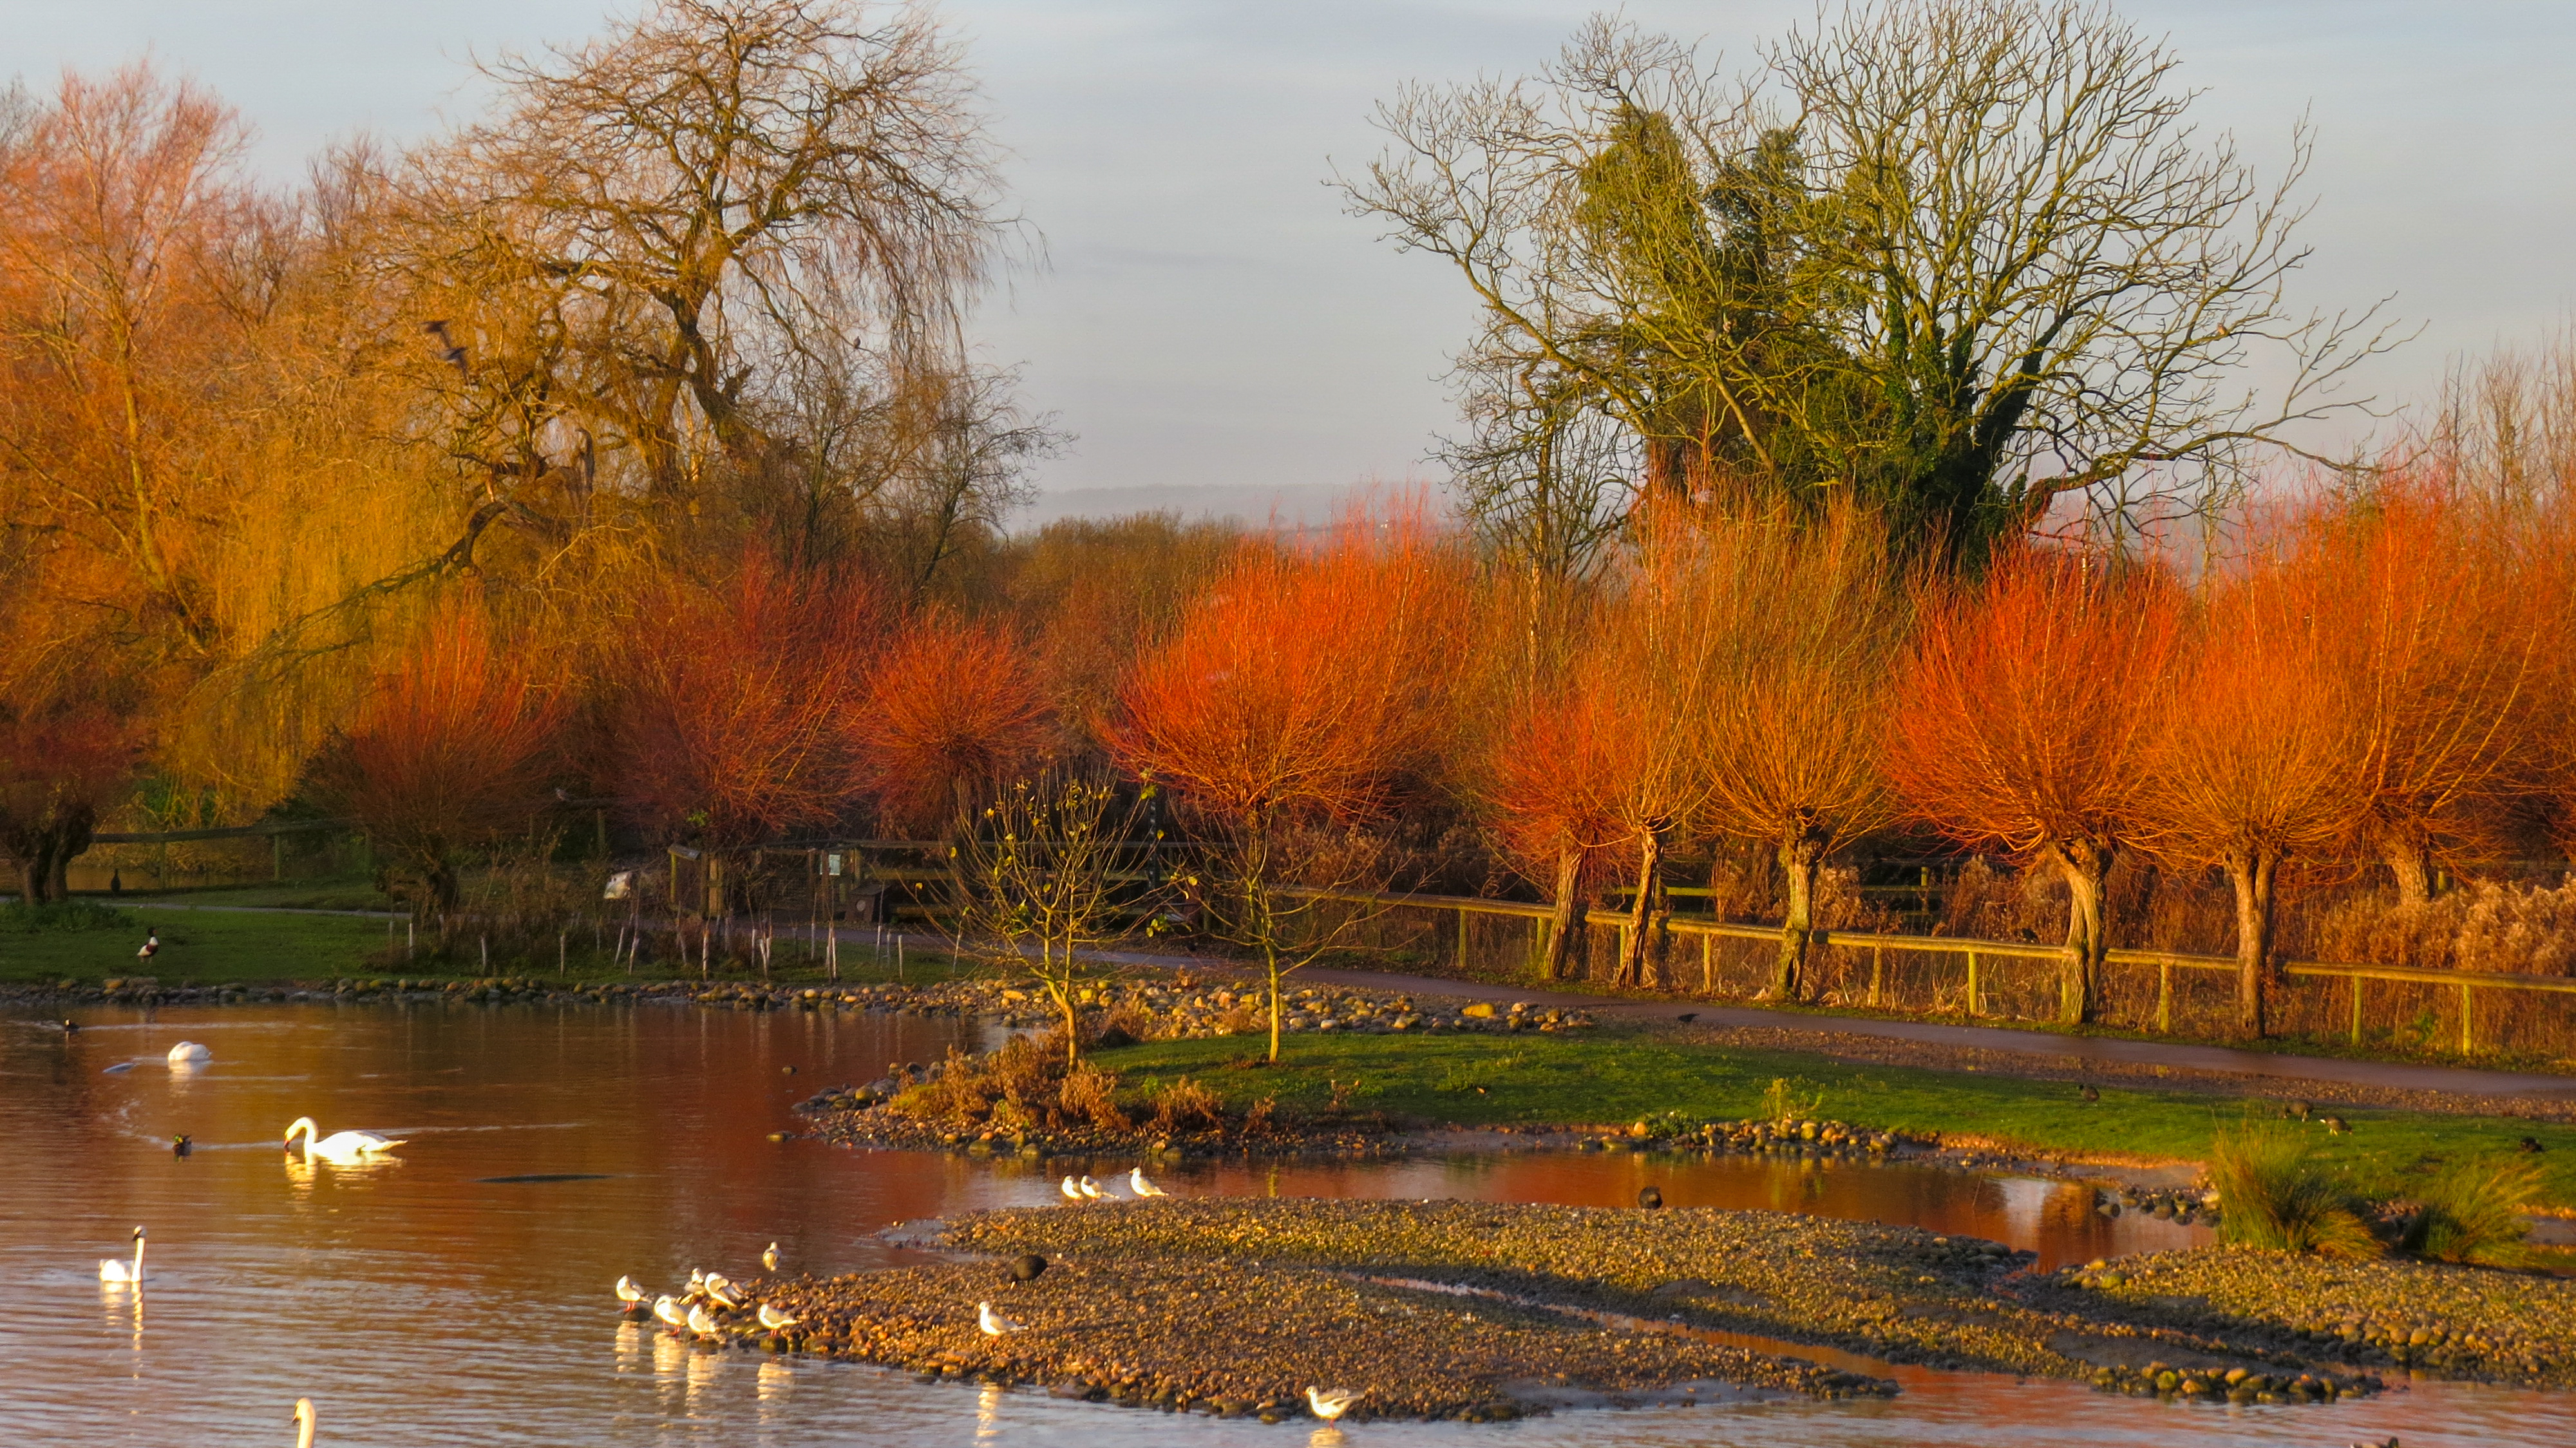 Fall for nature's spectacle at WWT wetland centres this autumn